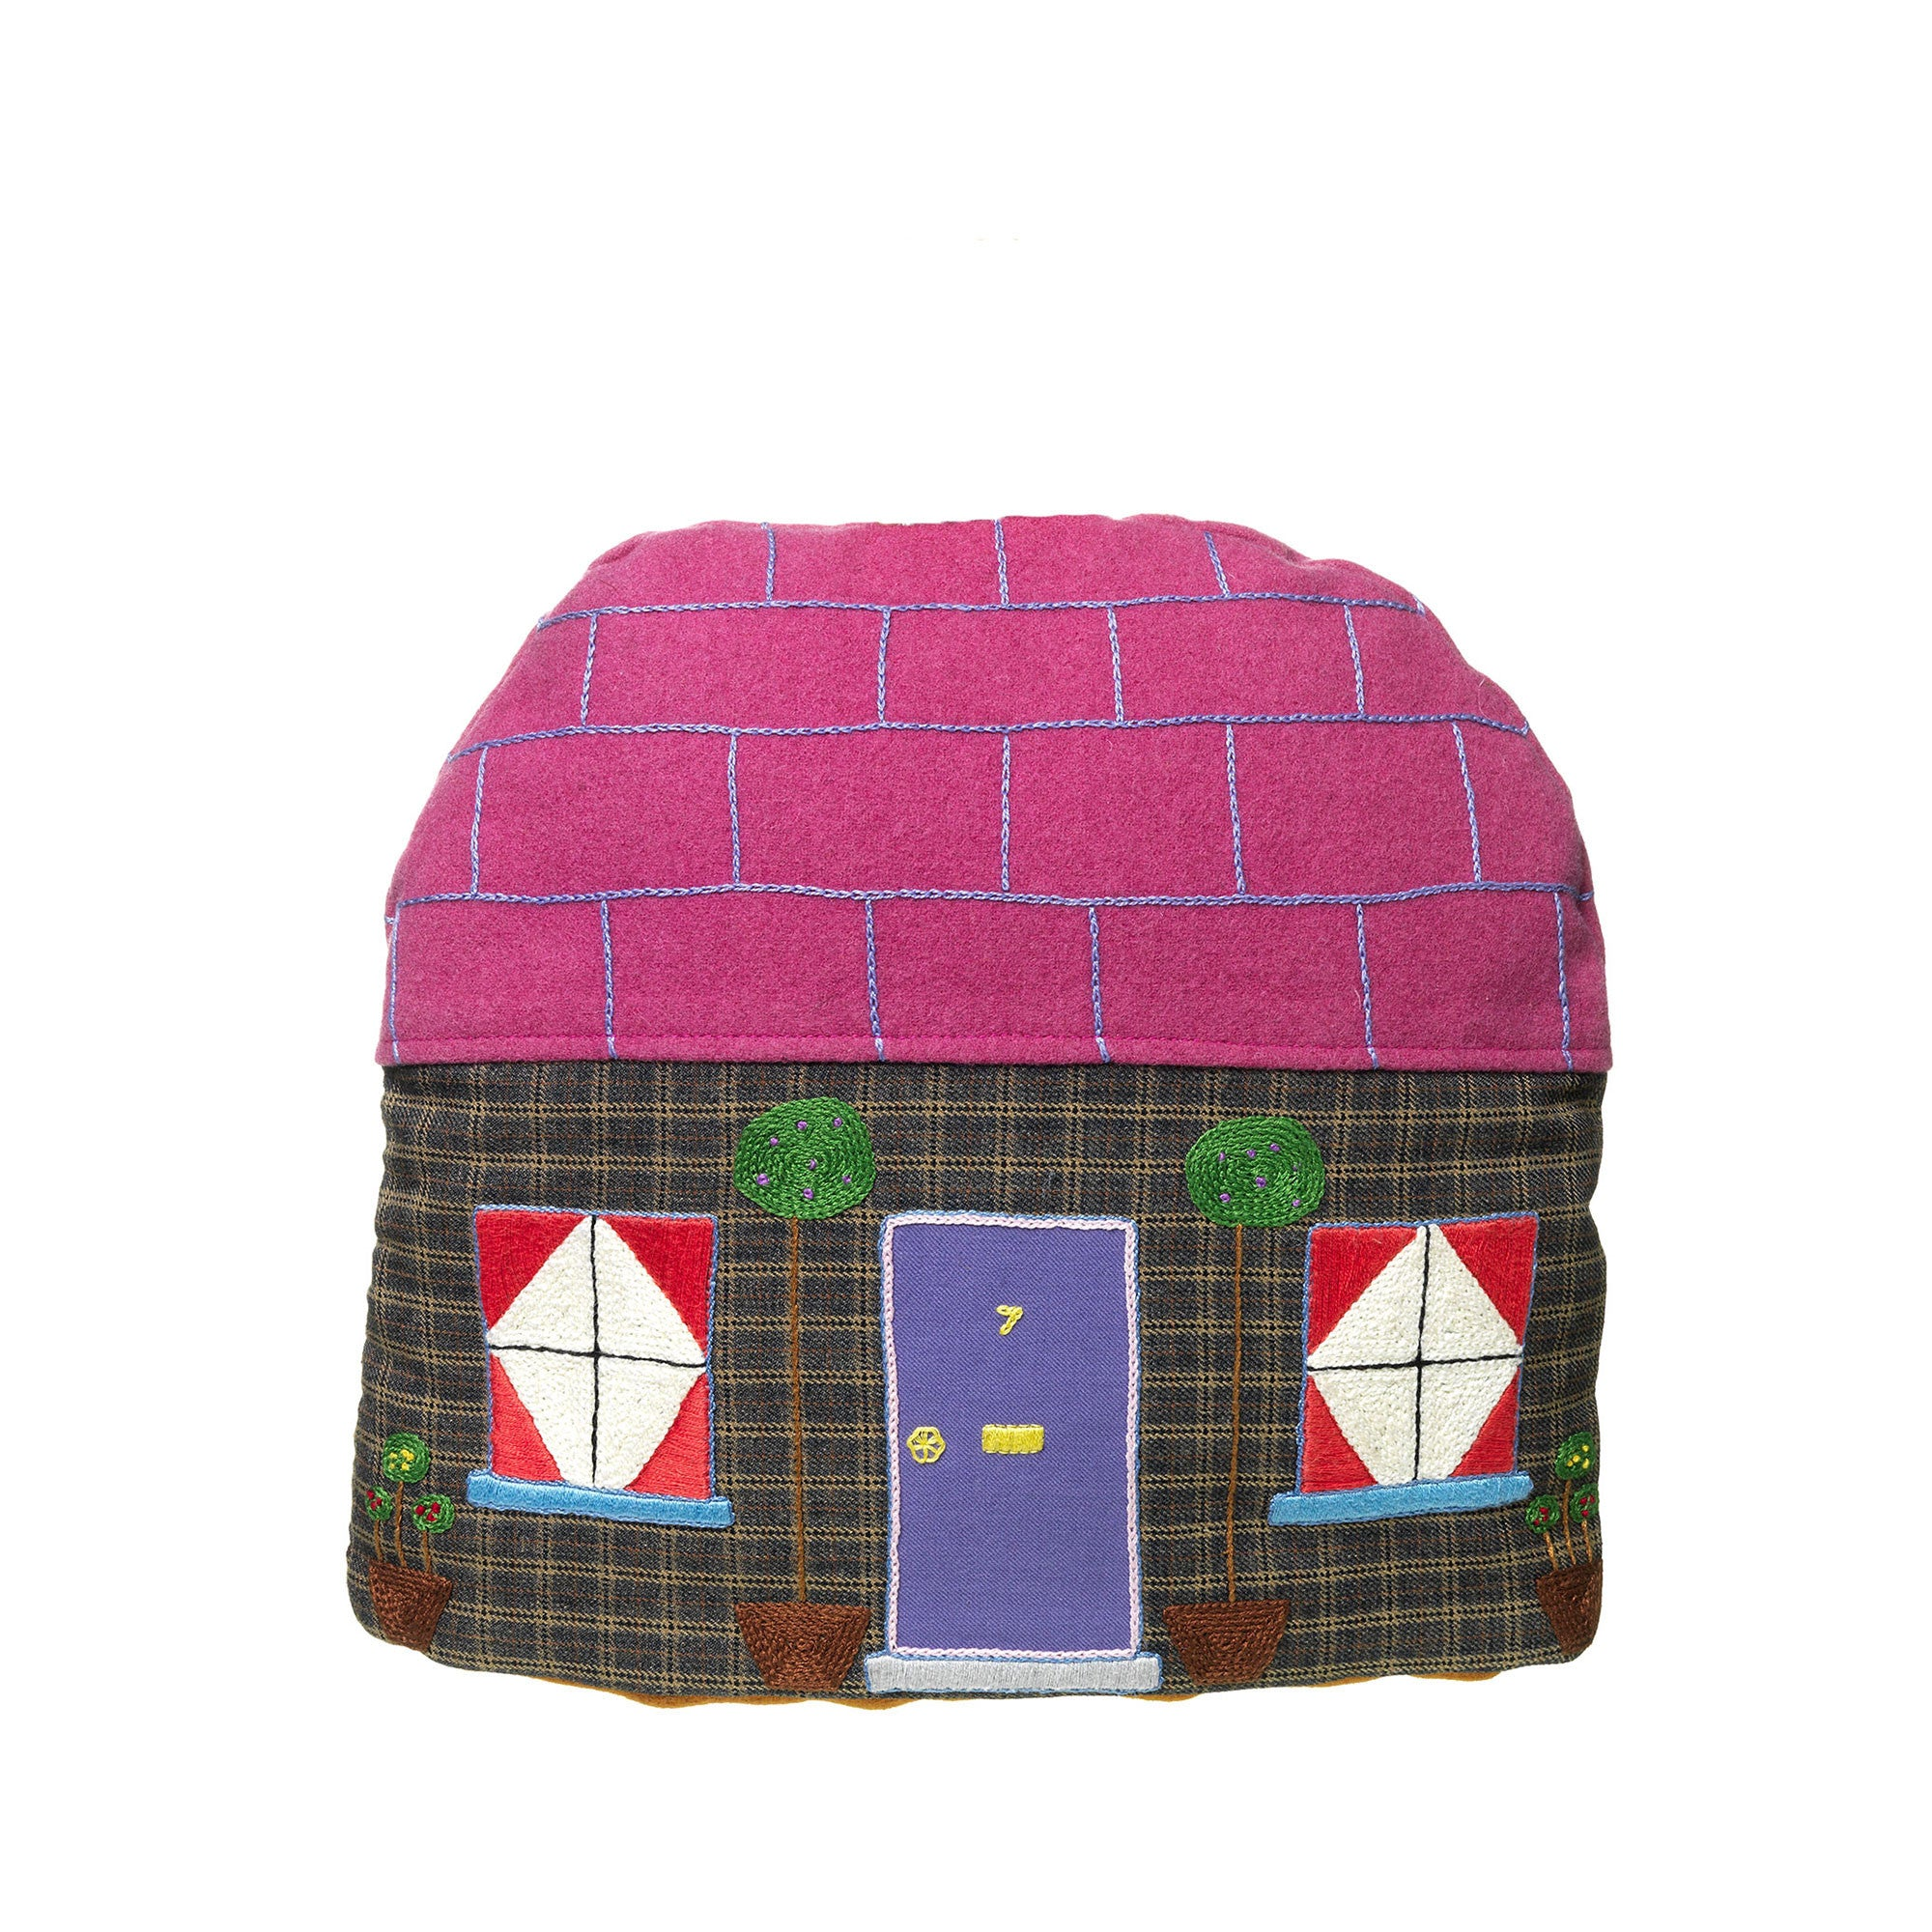 Small Handmade House Tea Cosy